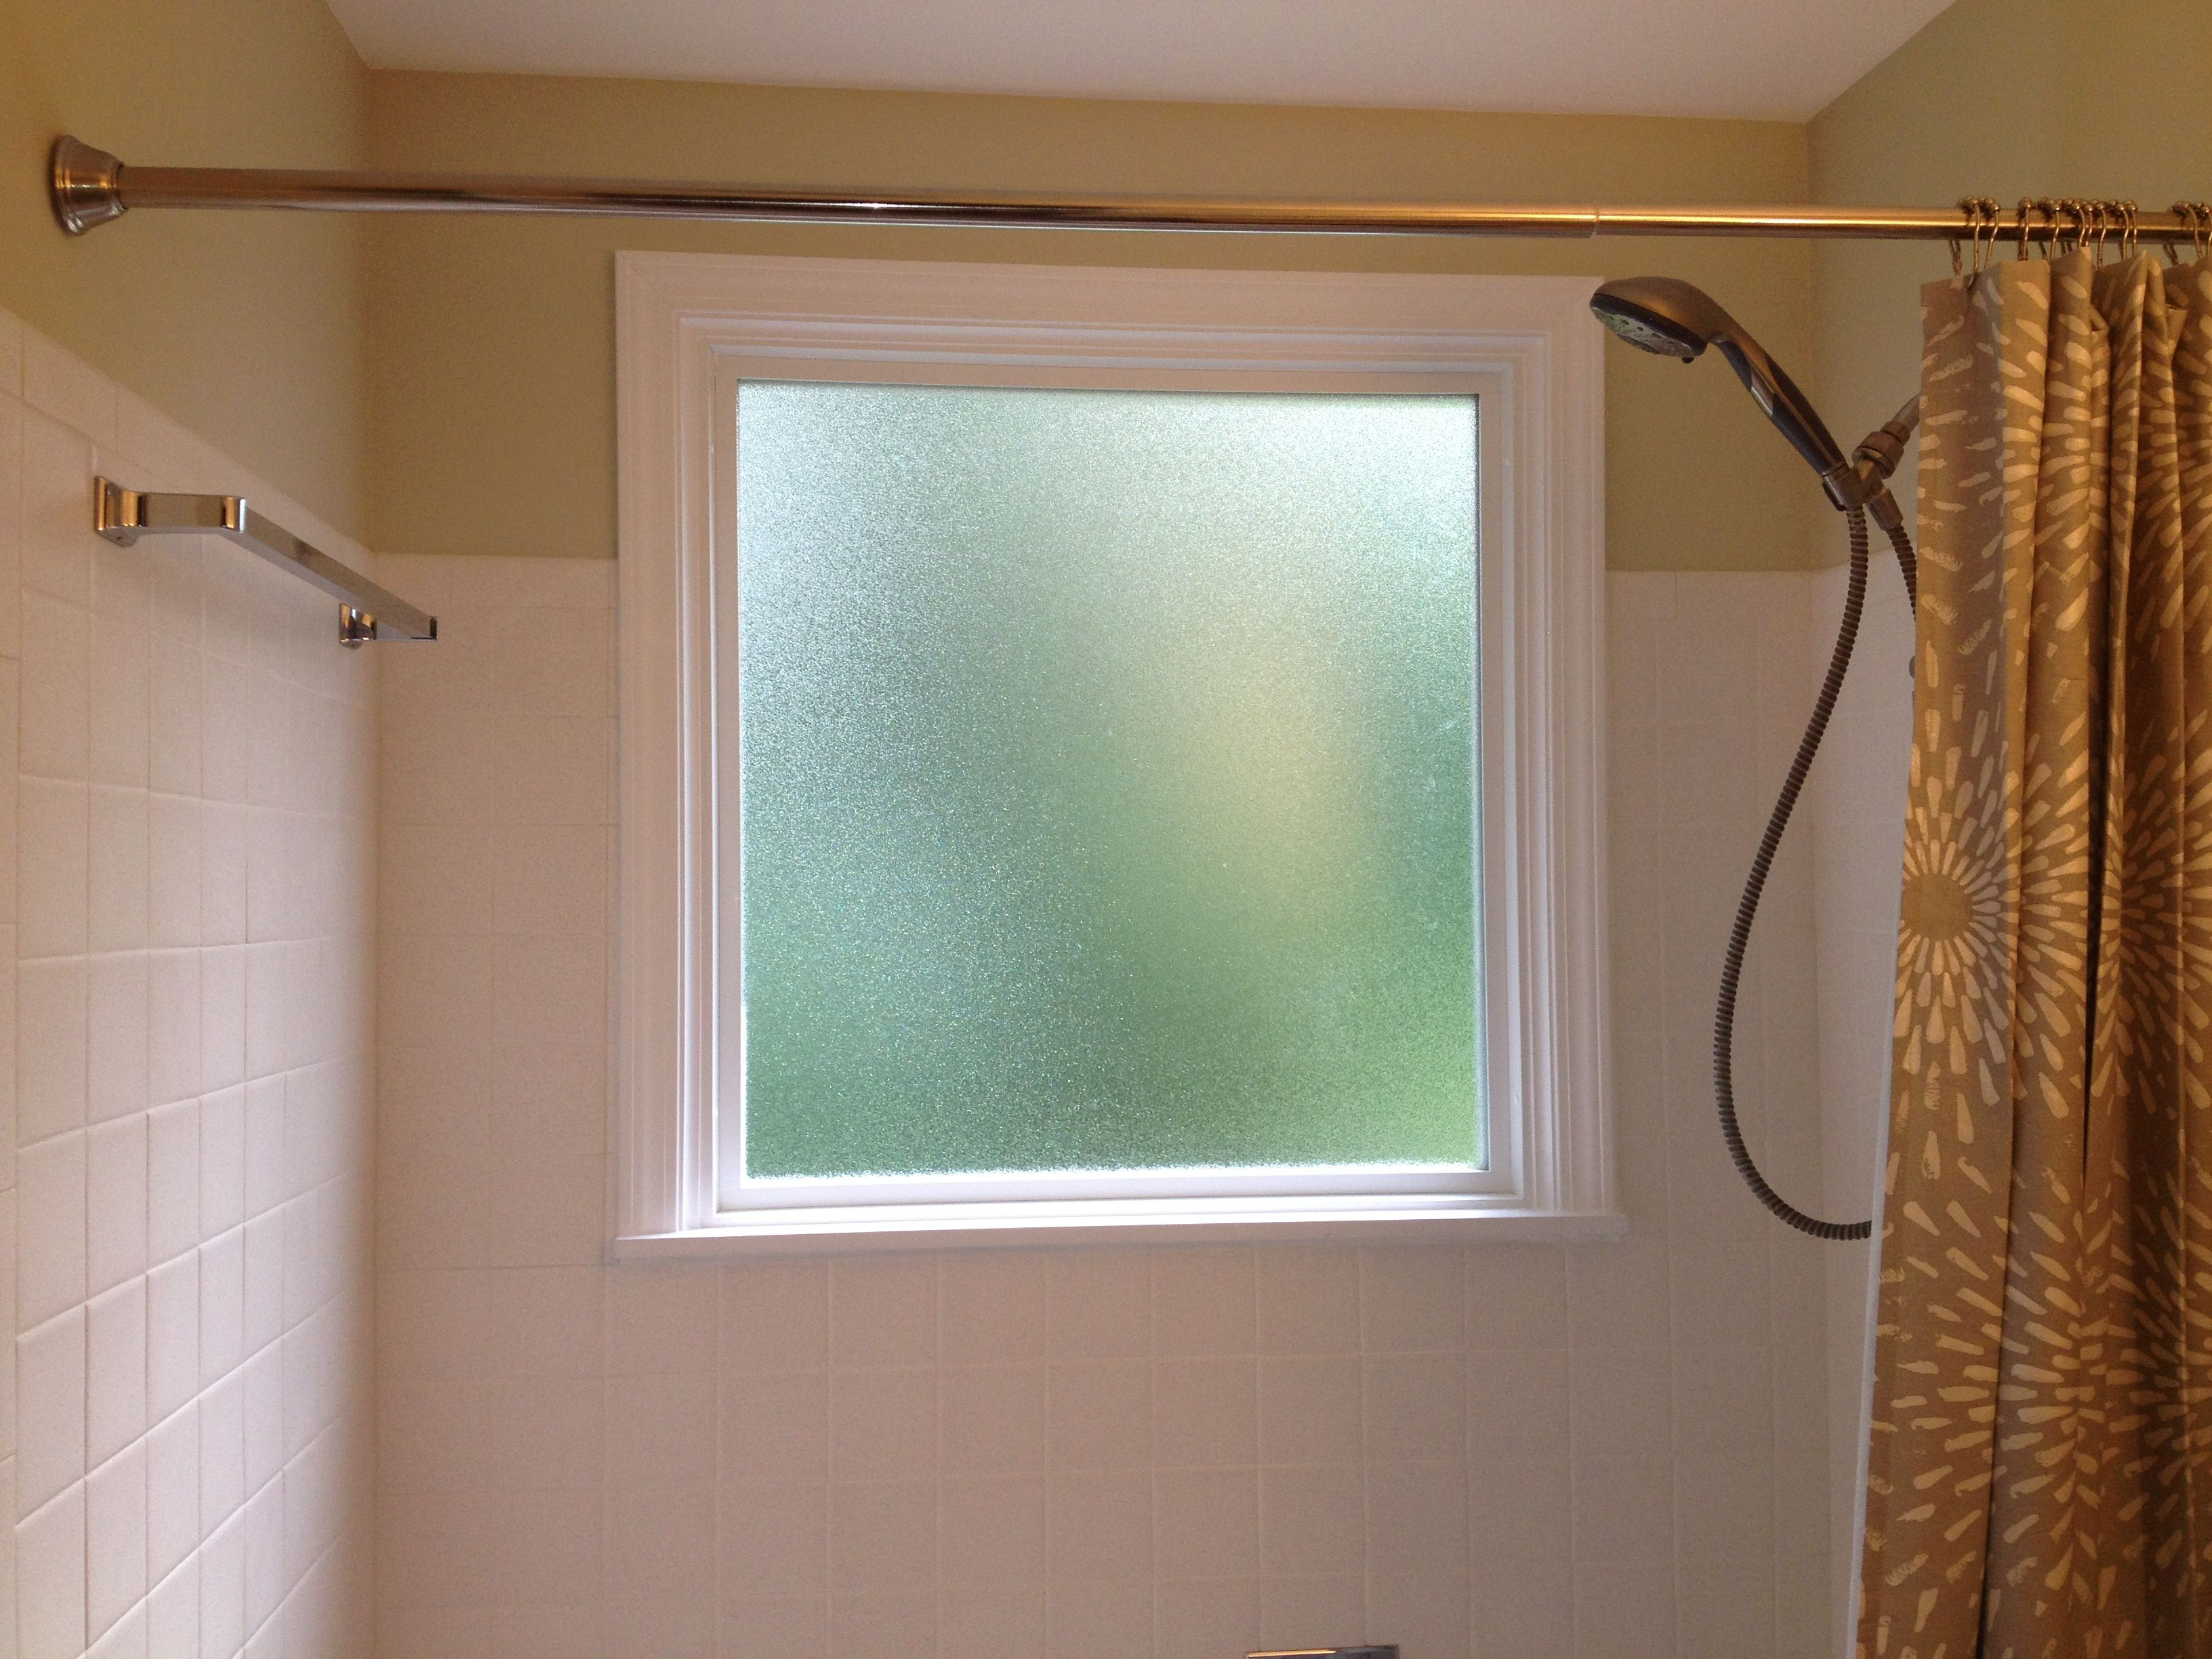 Pin By Tara Schwegler On For The Home Small Bathroom Window